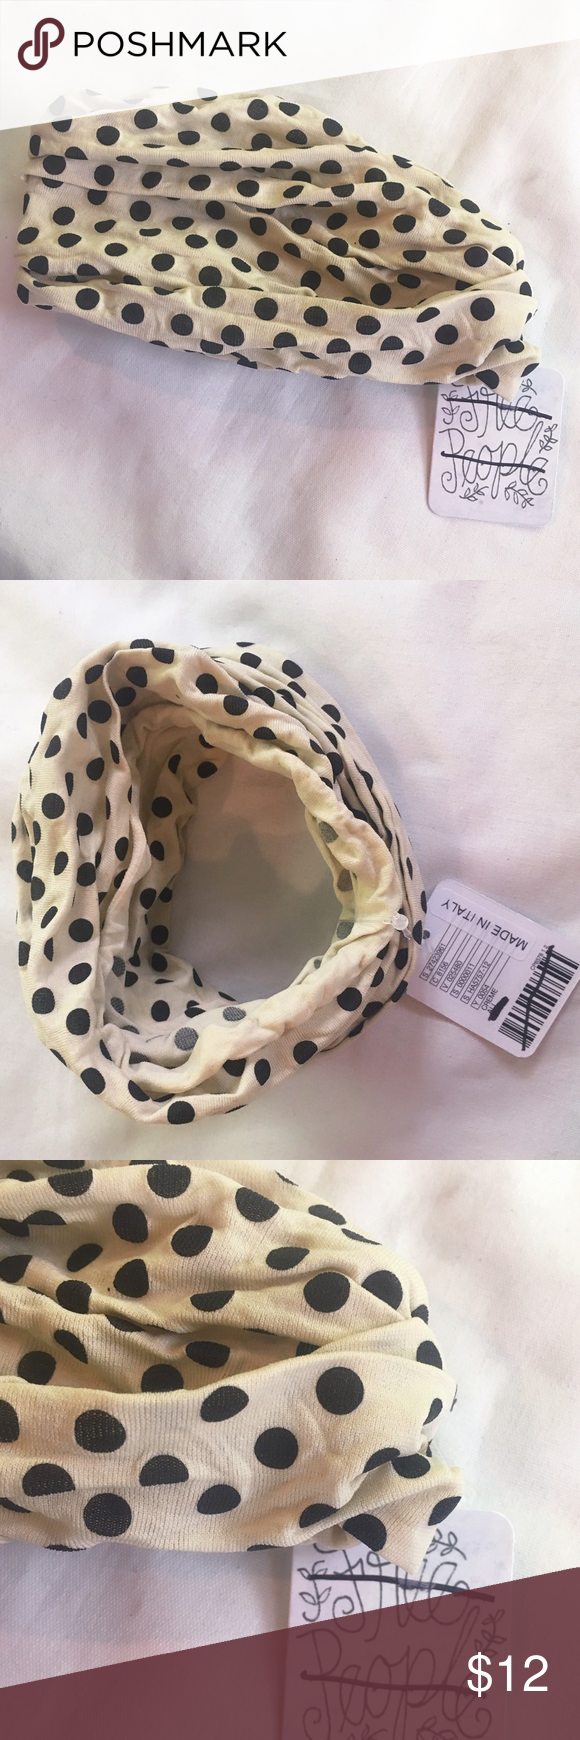 FREE people polka dot seamless headband hair wrap New With Tags Free People Polka Dot Print Seamless Headband Head Wrap Boho  Made in Italy  Super soft ***leopard print shown to display the fit polka dot print is available (check my closet for the leopard one) Free People Accessories Hair Accessories